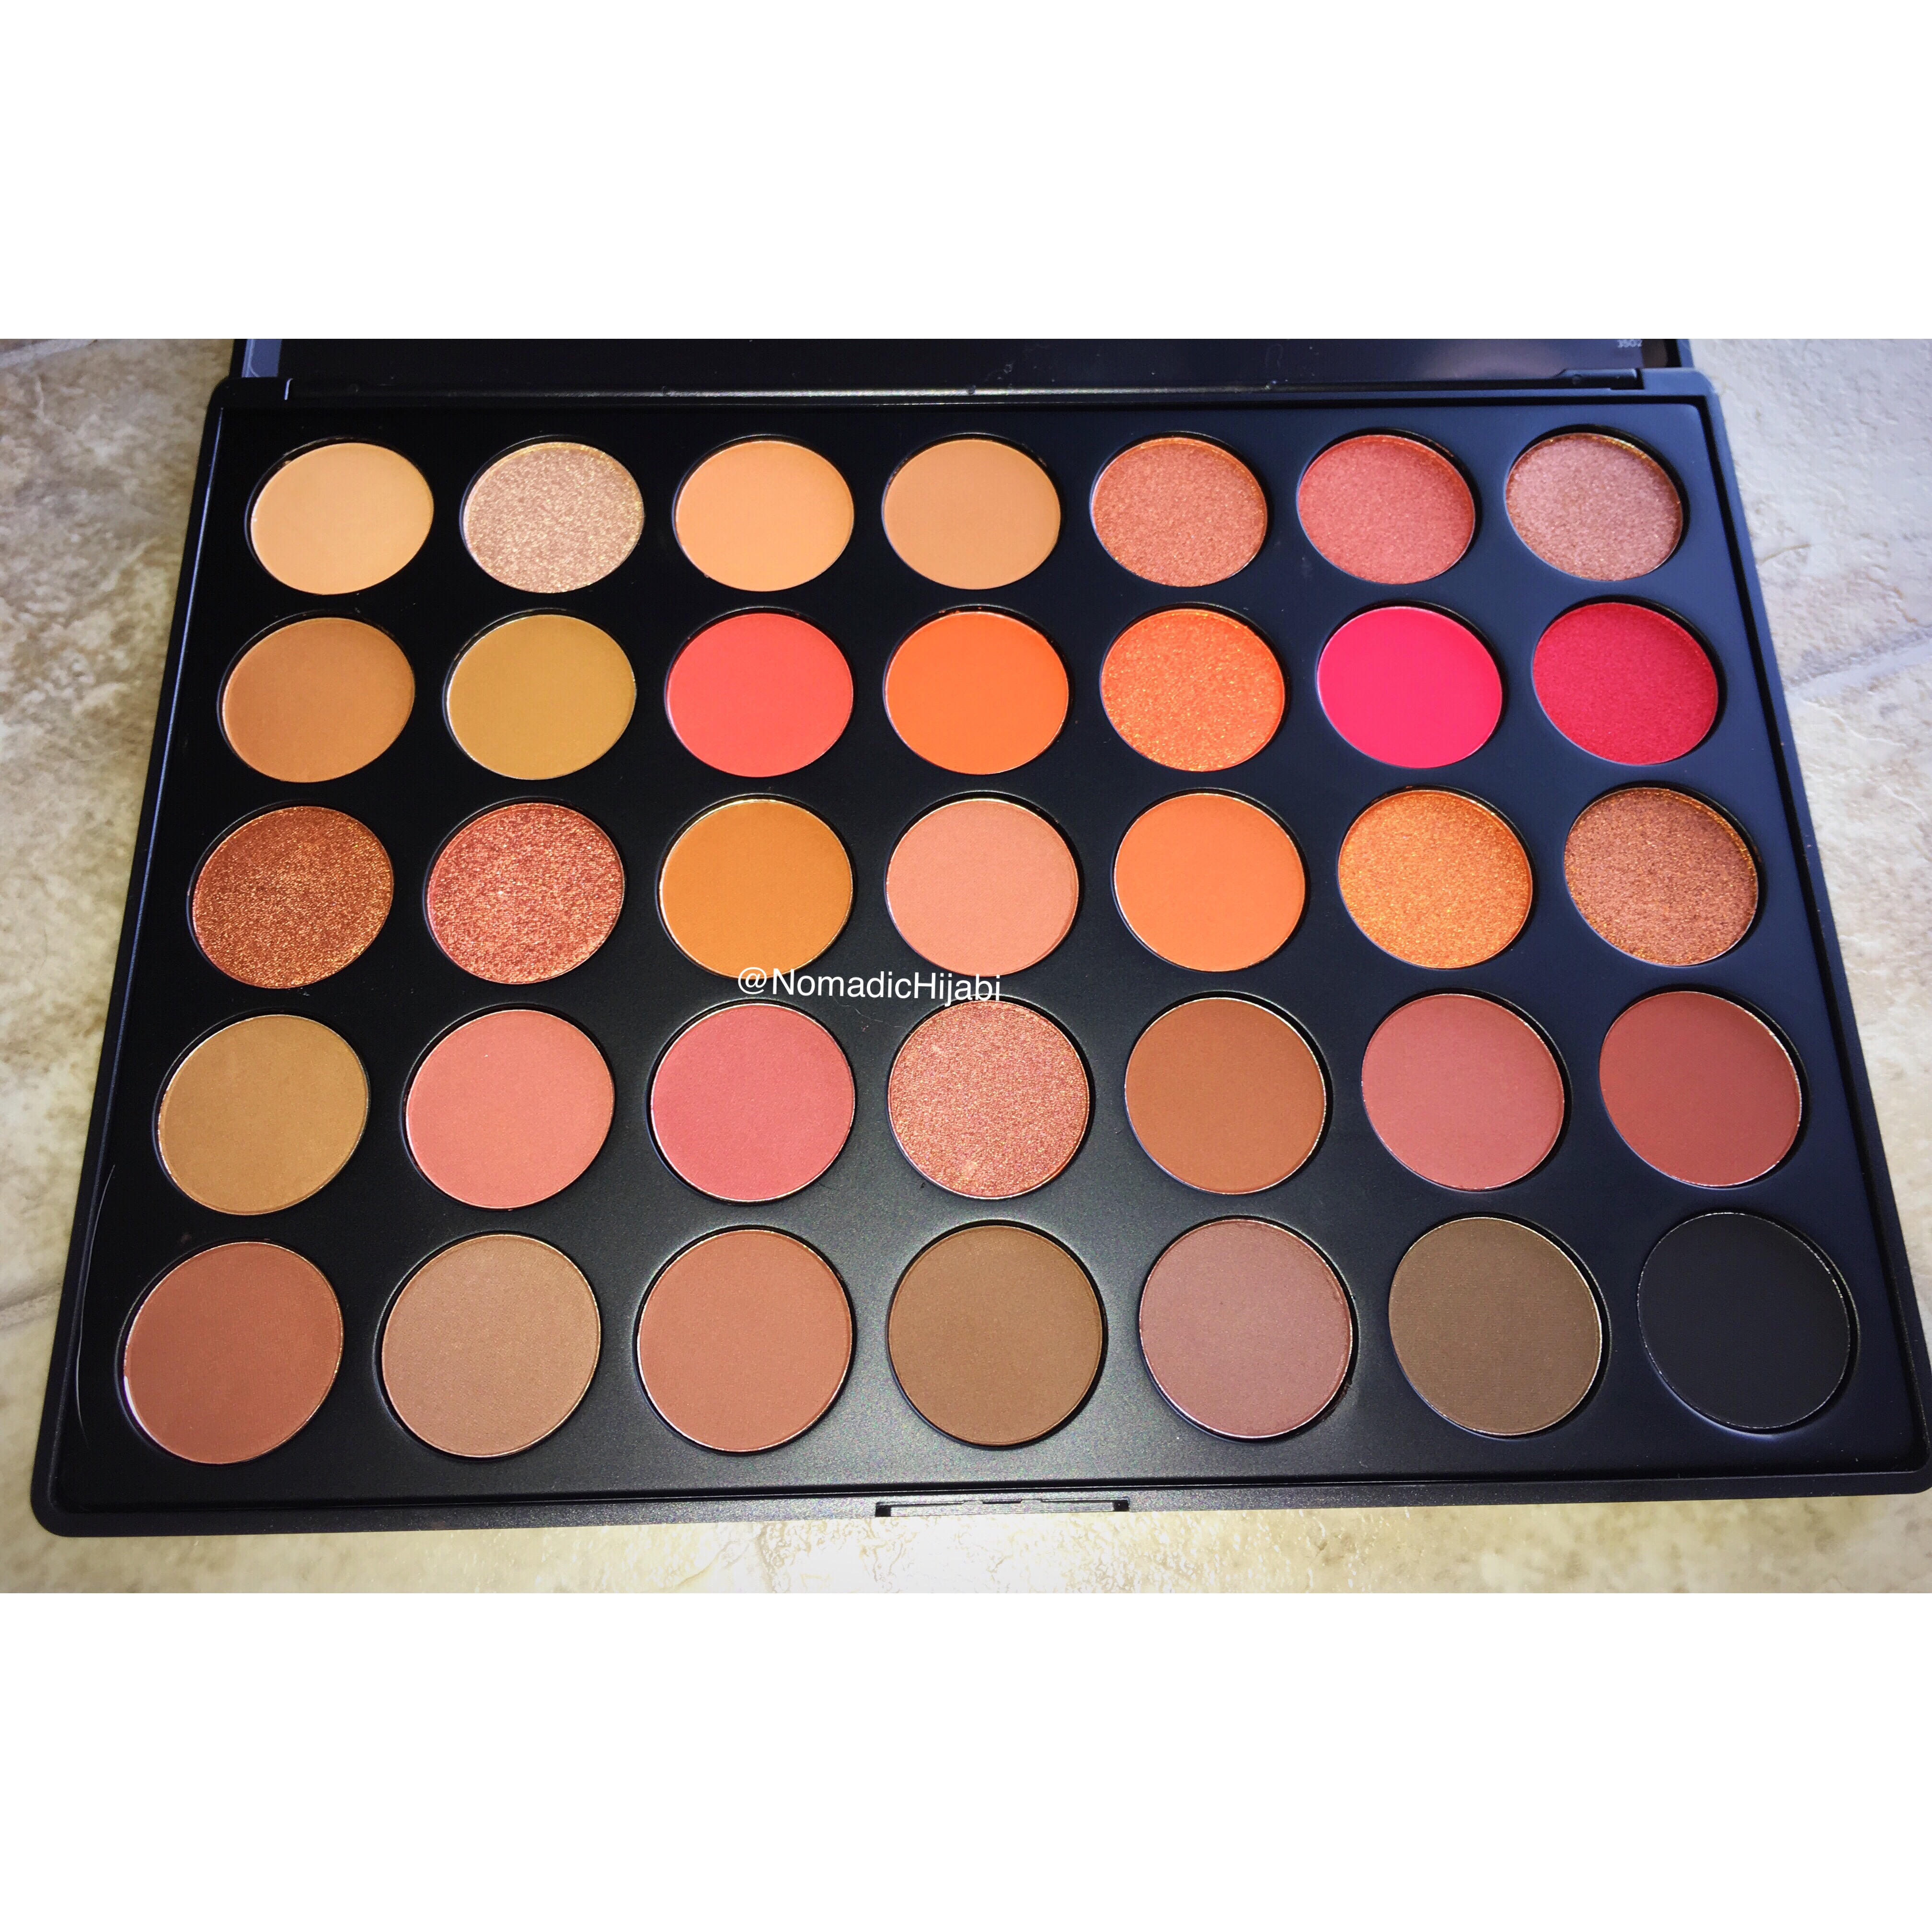 Morphe 3502 Palette Review and Swatches.